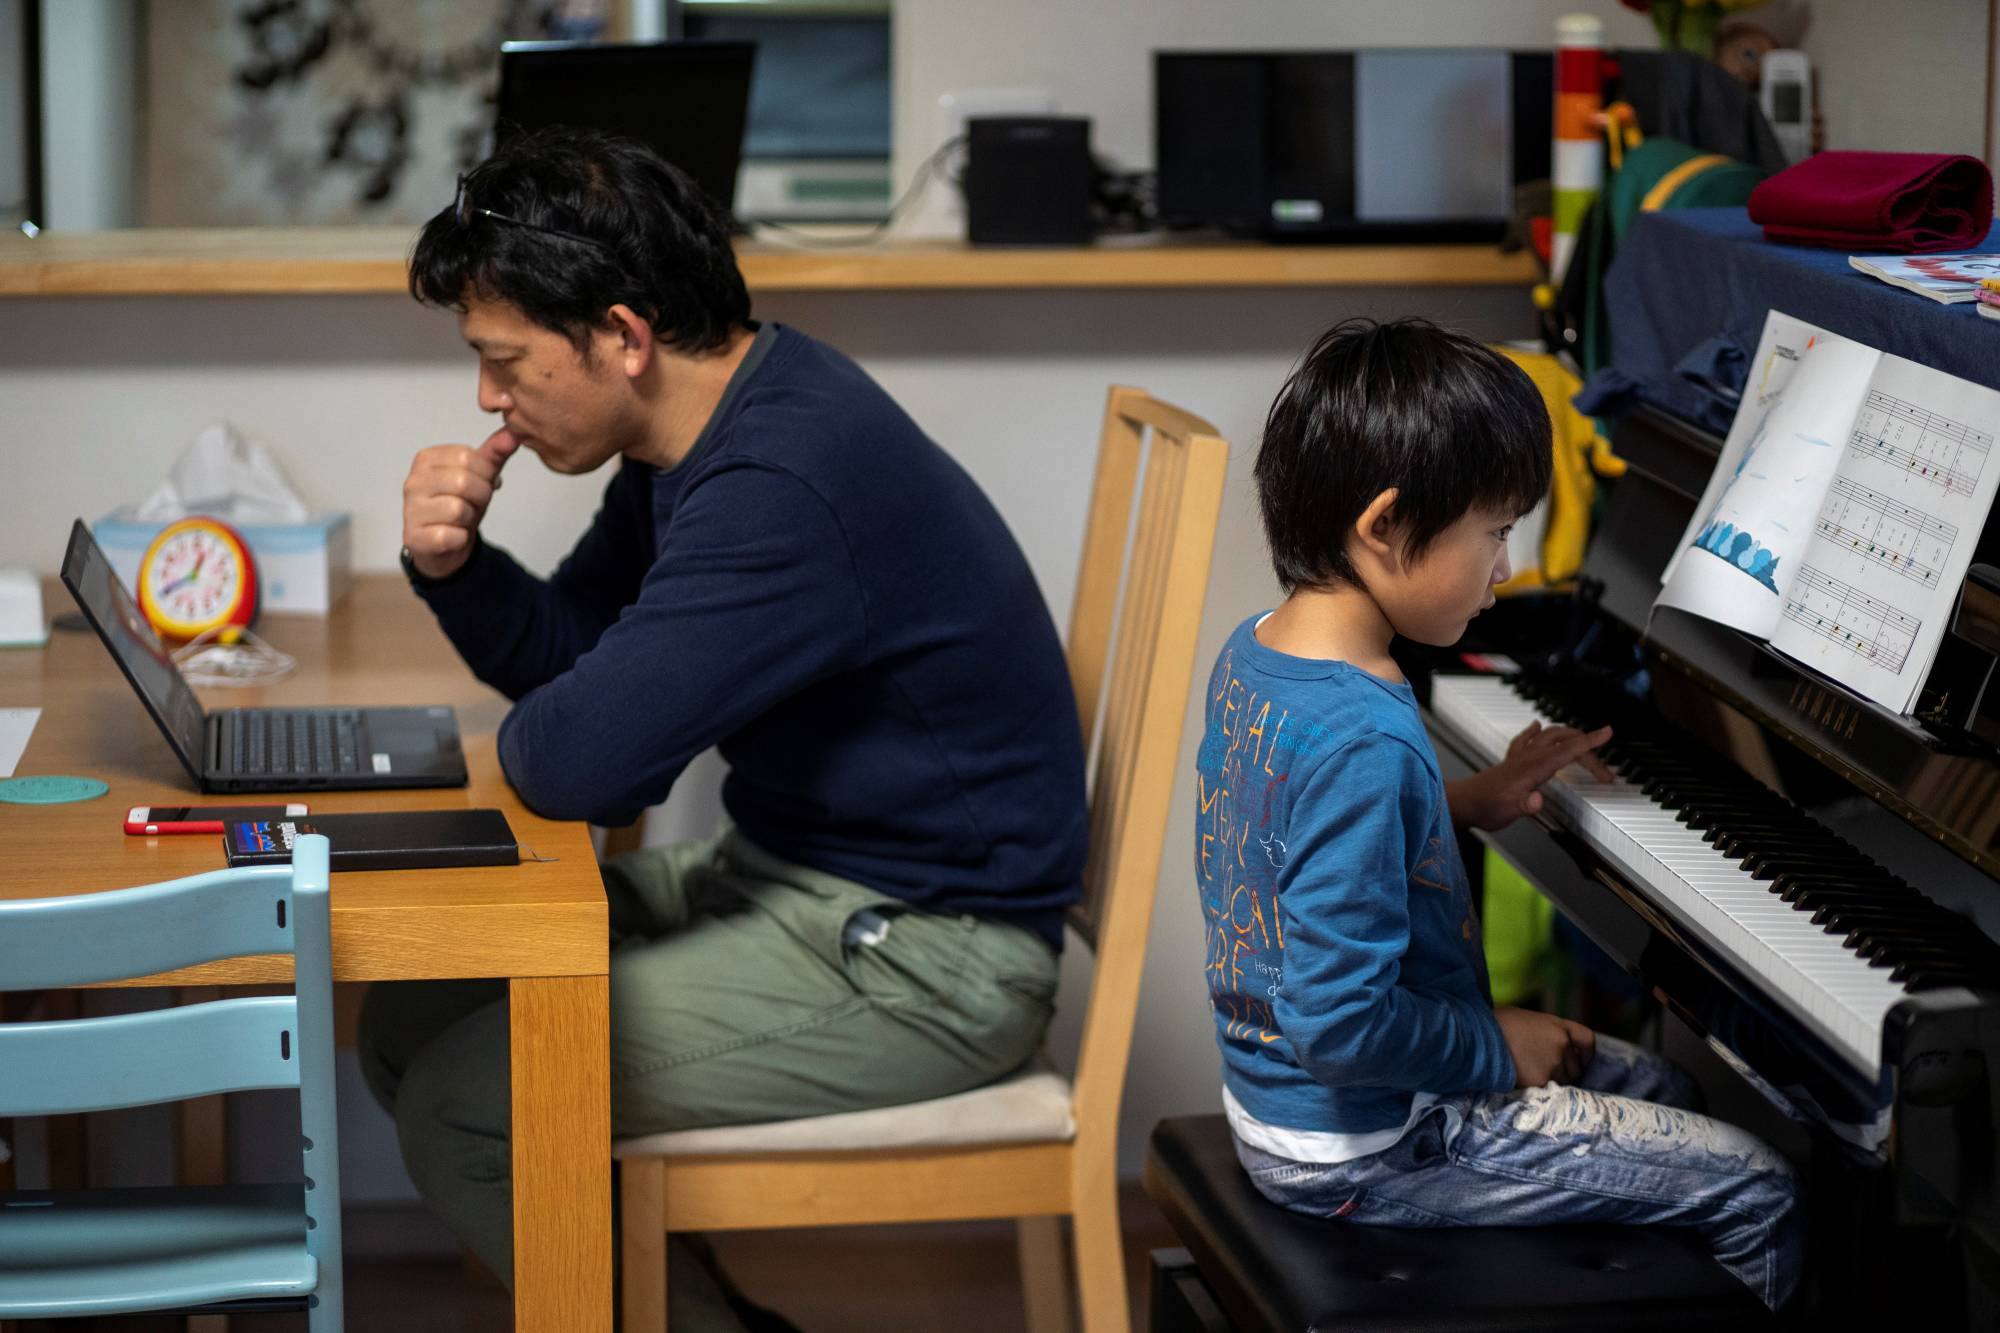 A total of 61.1% of people in Japan believe it is hard to raise children in the country, according to a recent government survey that highlighted a perception of insufficient support for parenting compared with other nations. | REUTERS